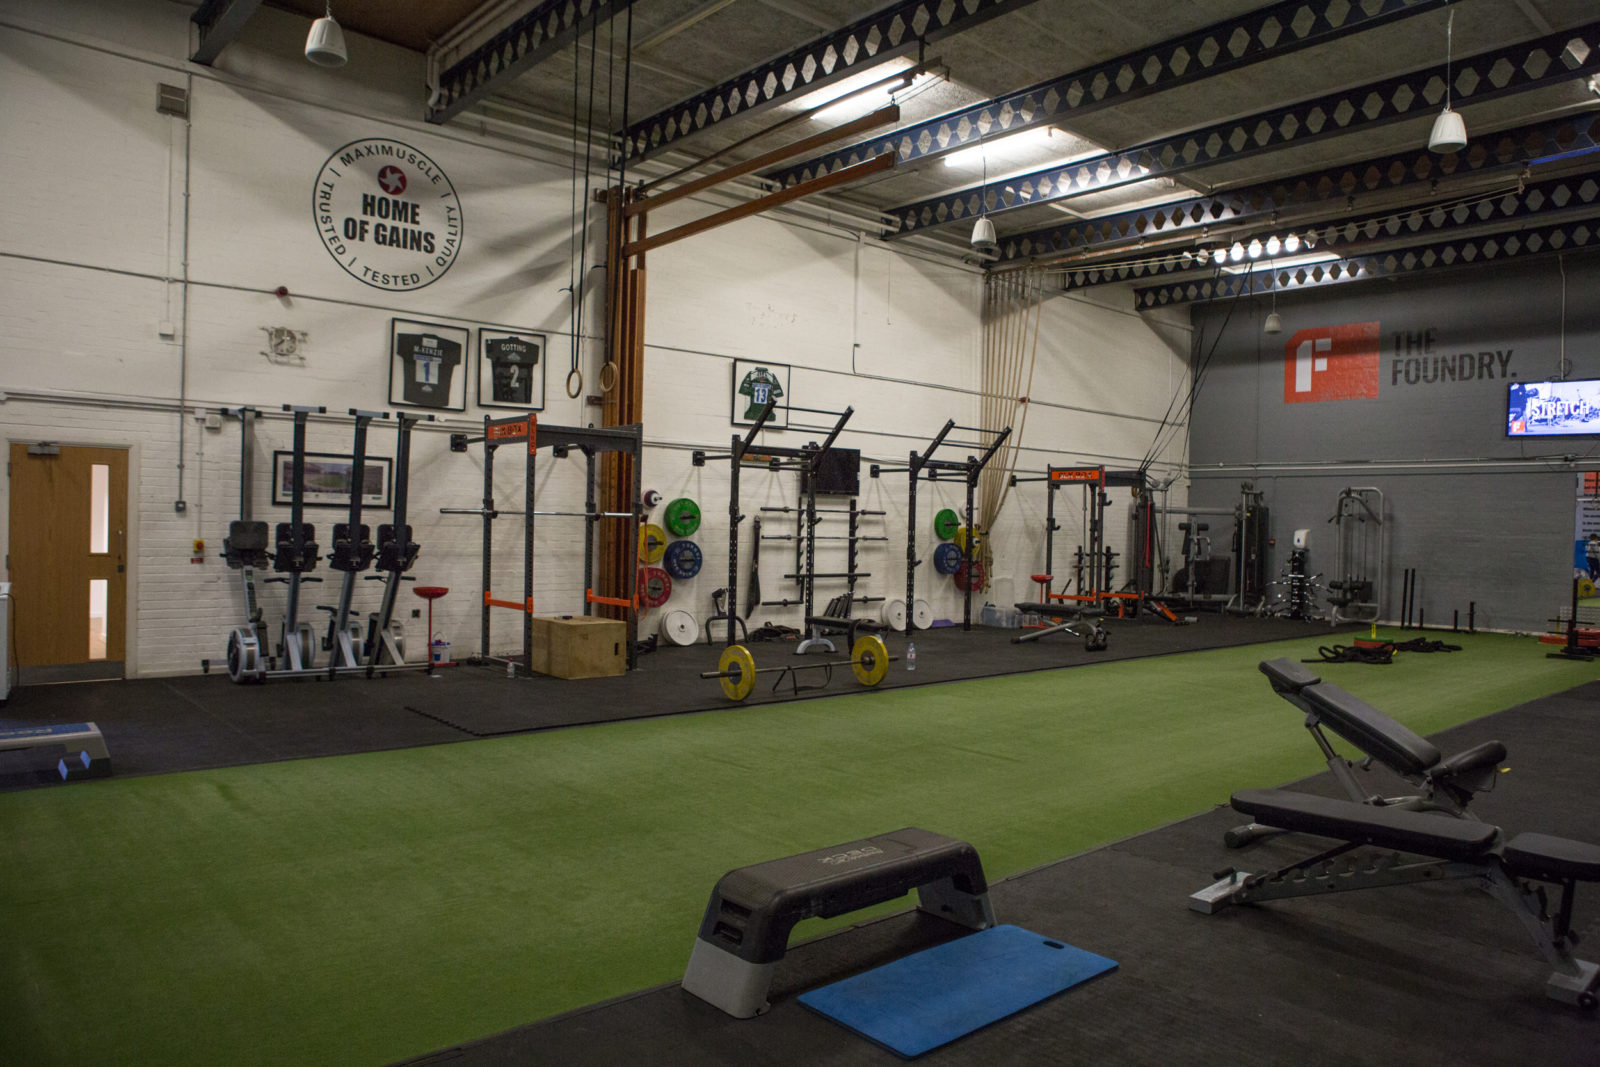 The Foundry – Gym and Fitness Studio | Black Prince